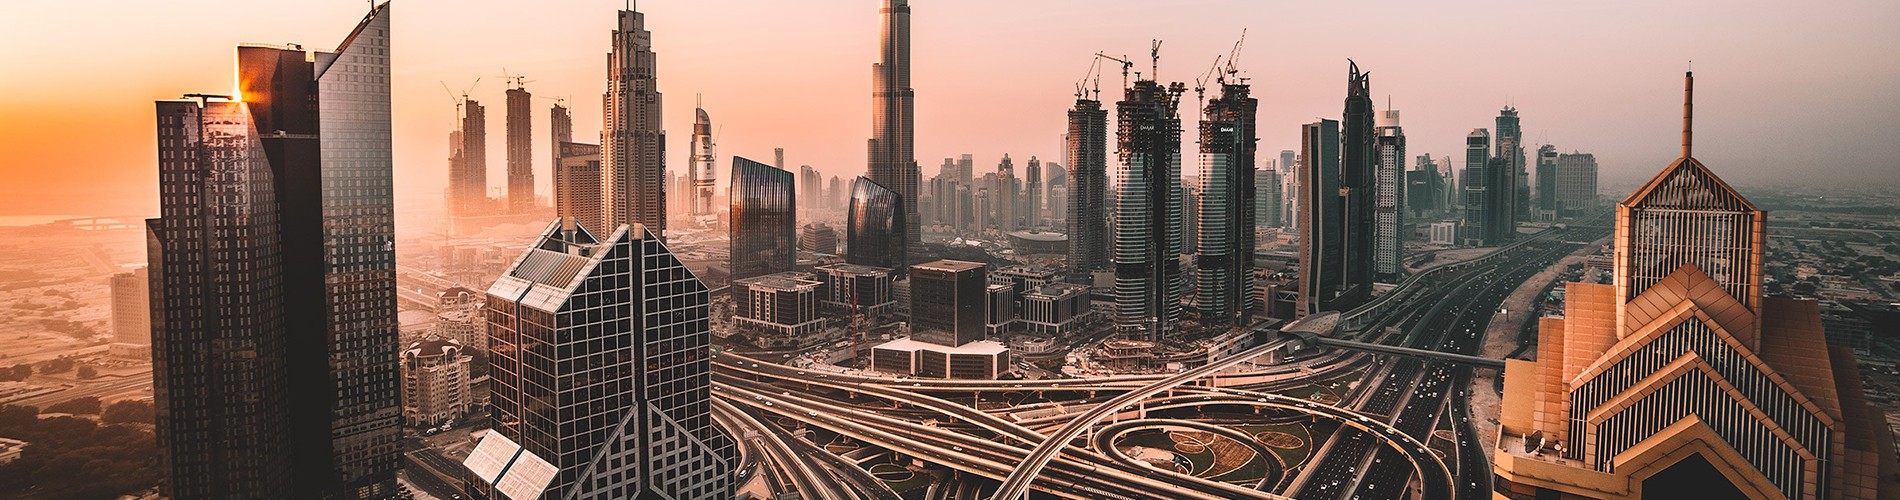 The future of urban transport in smart cities is discussed in Dubai